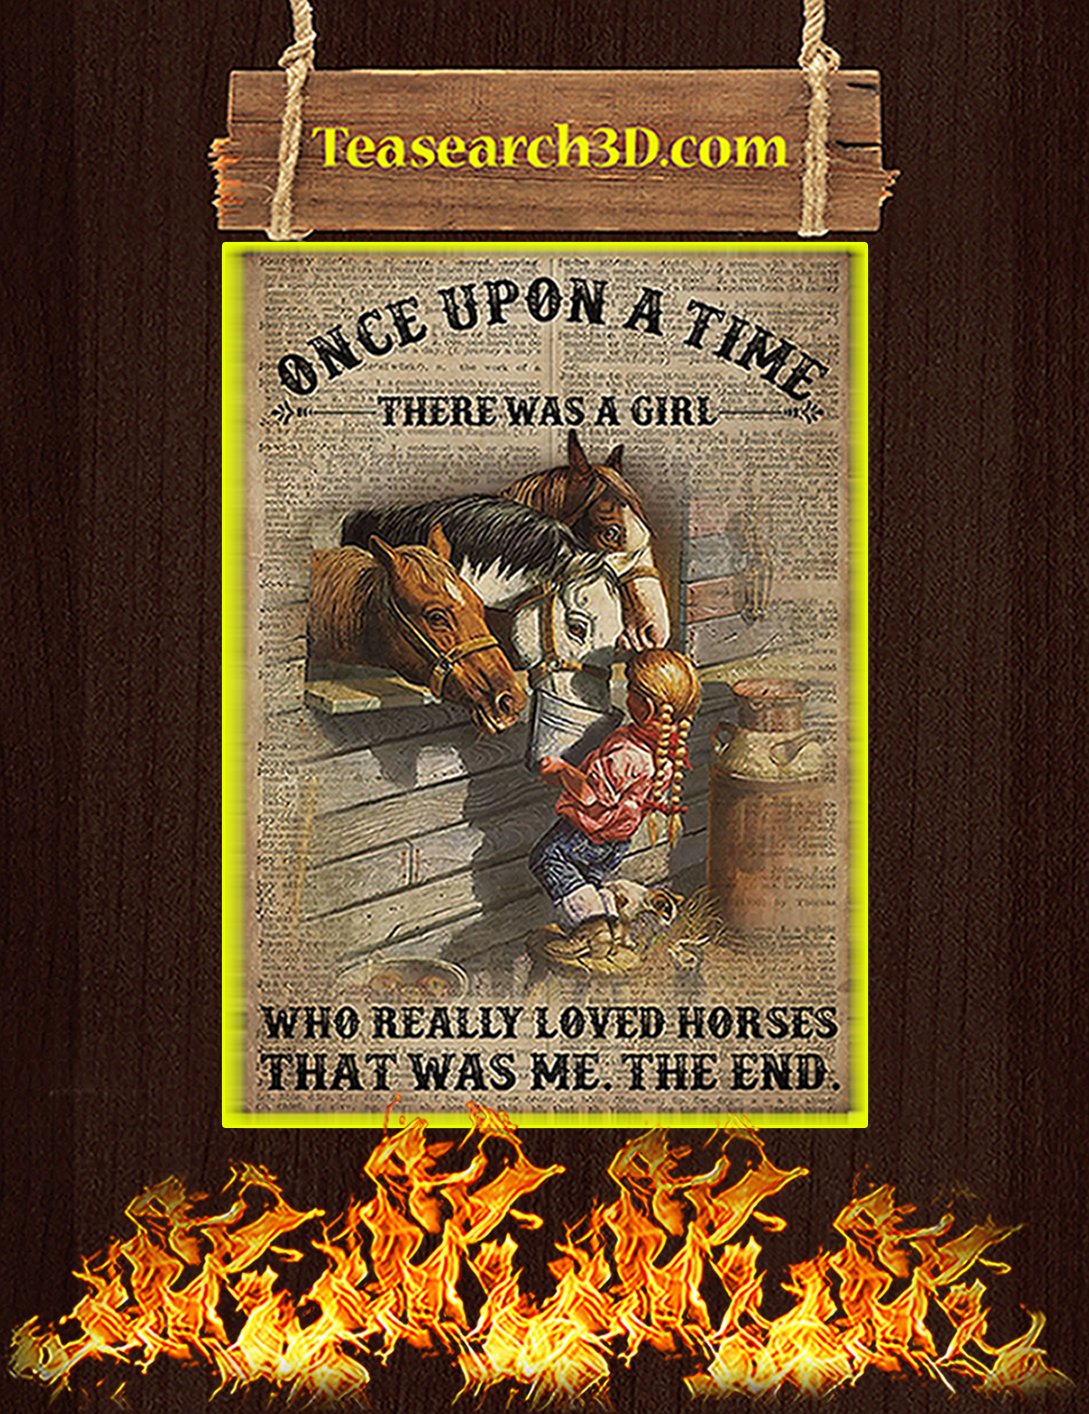 Once upon a time there was a girl who really loved horses poster A2